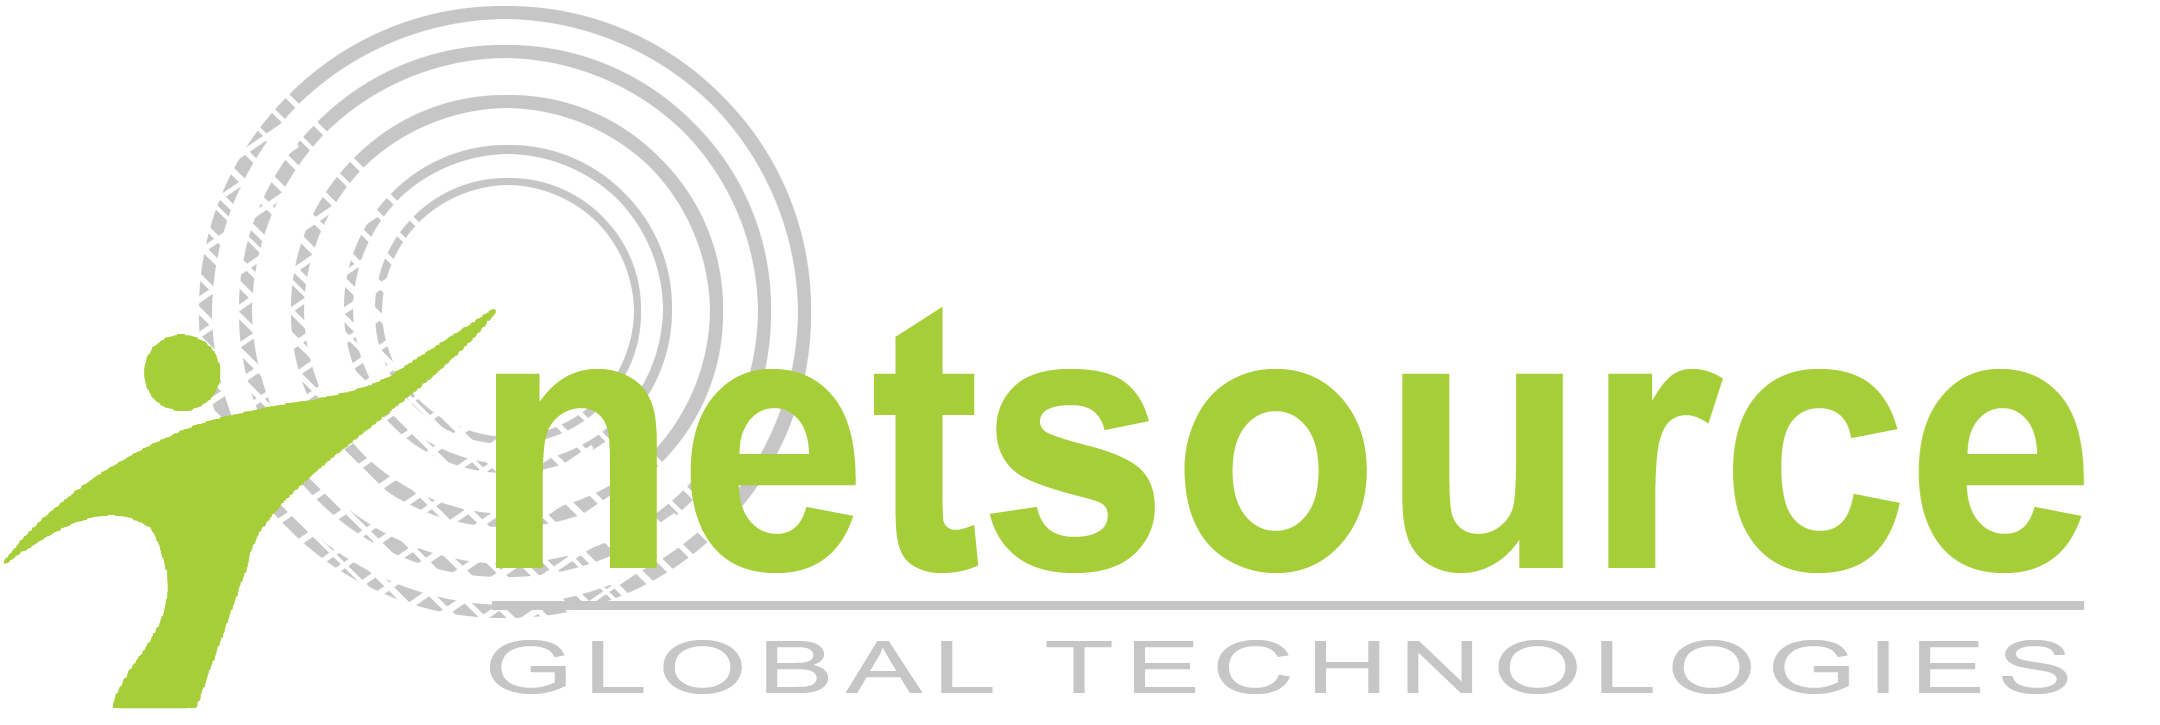 PT. Netsource Global Technologies